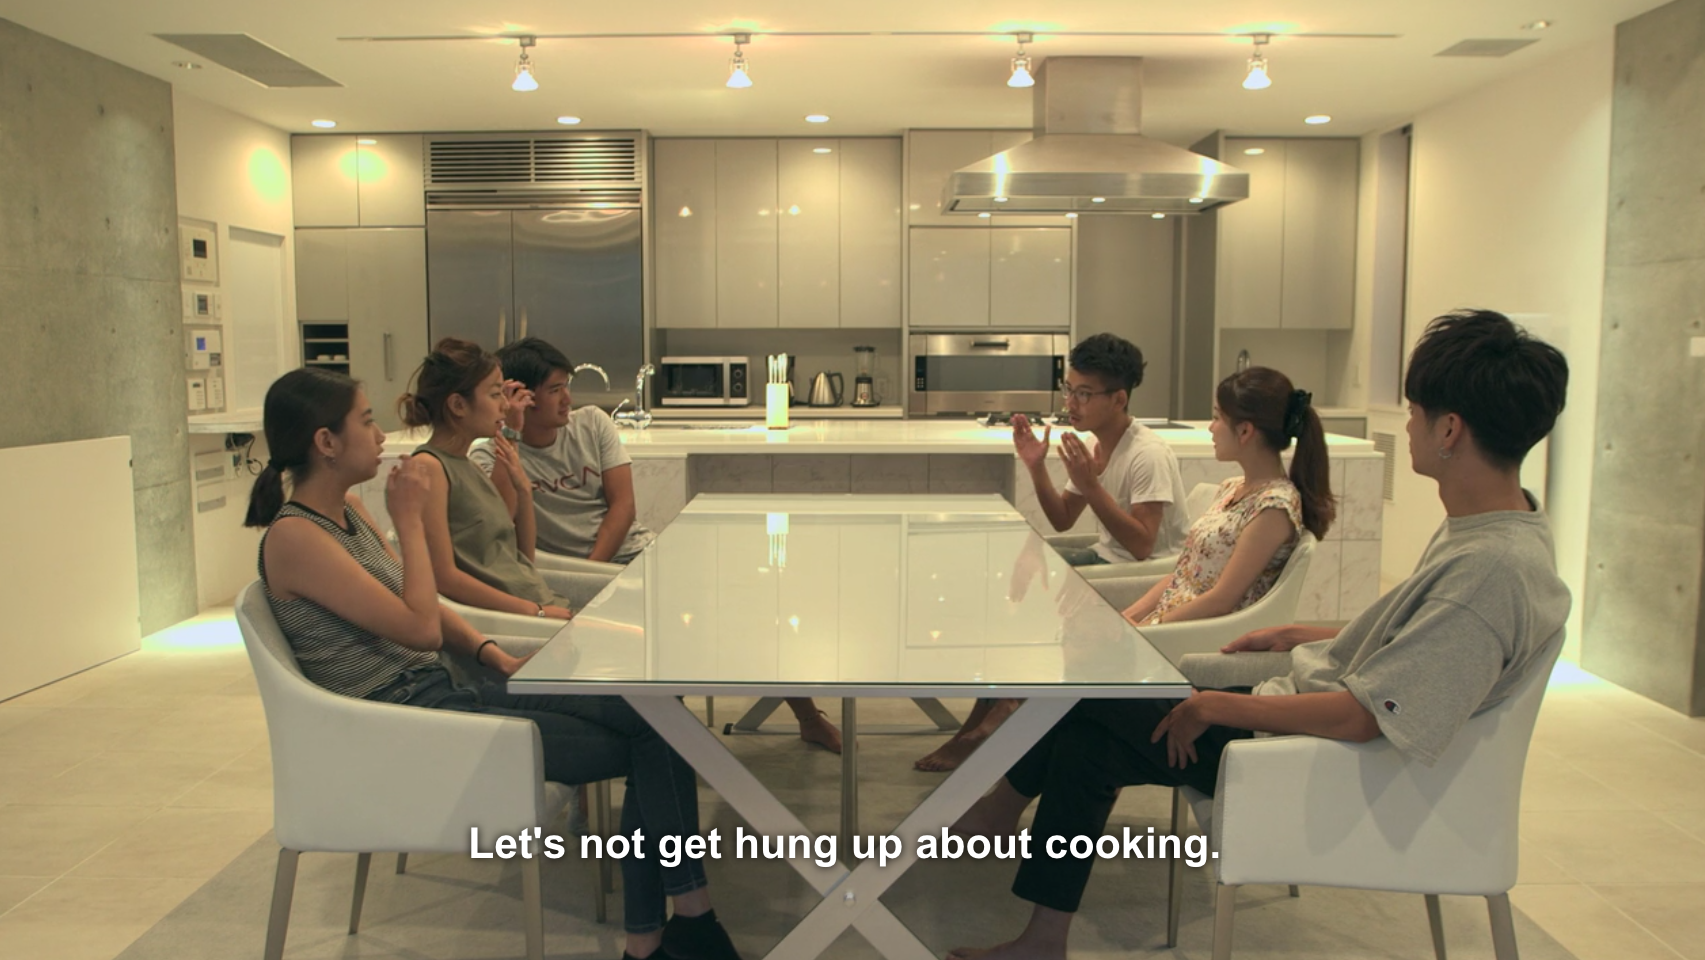 Terrace house fixes what s broken in reality tv polygon for Terrace house japan cast